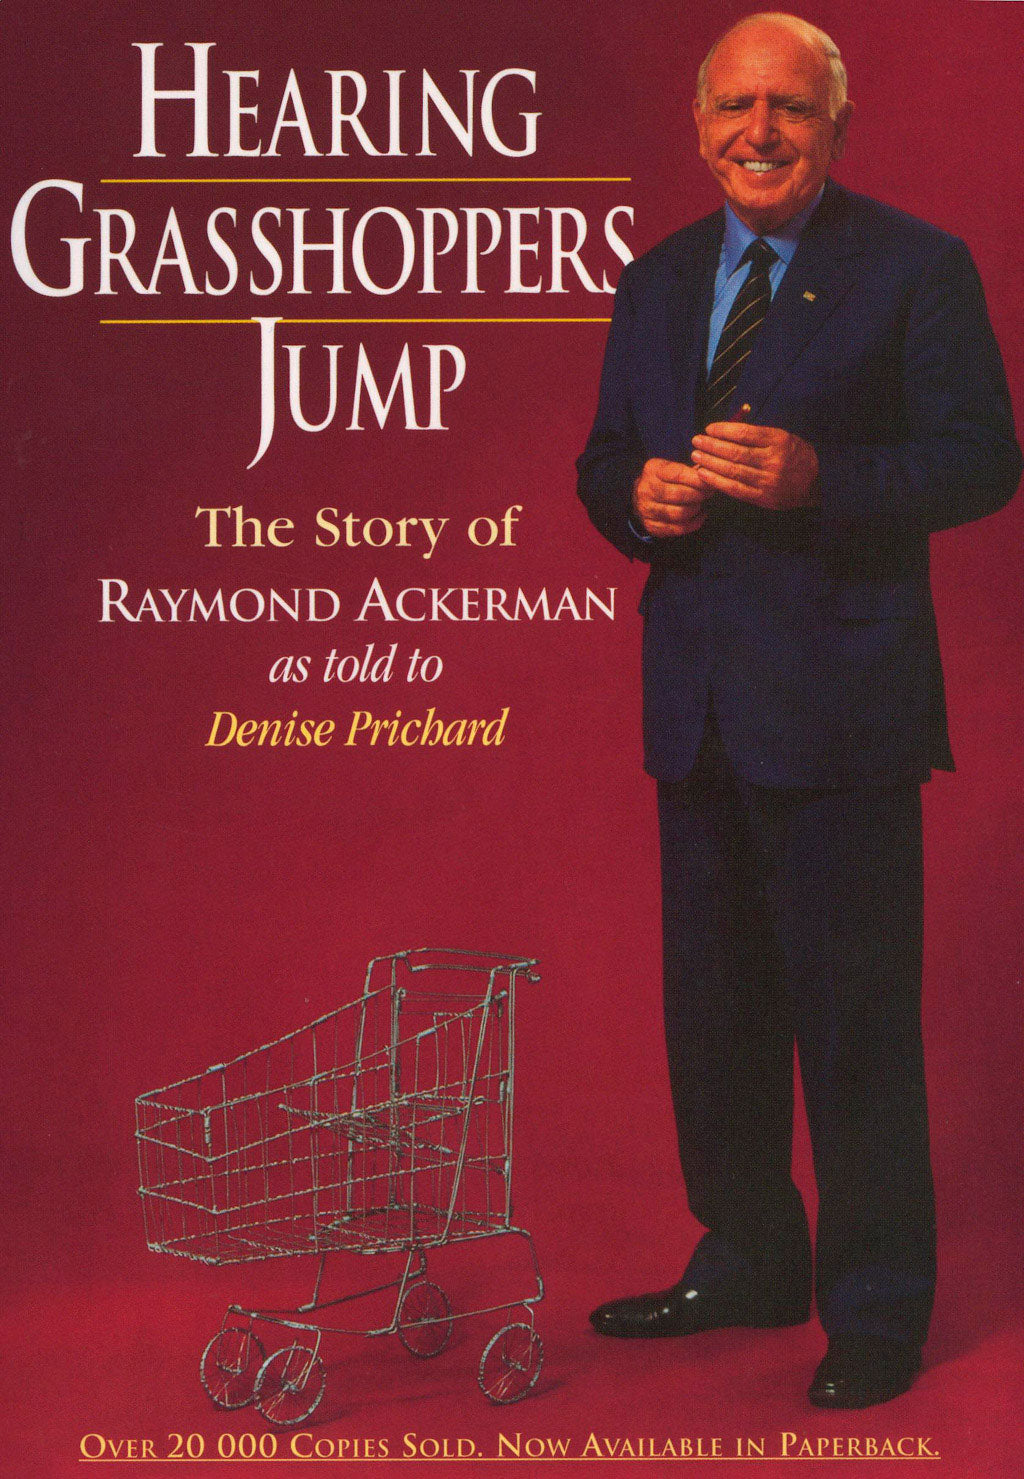 HEARING GRASSHOPPERS JUMP: The story of Raymond Ackerman